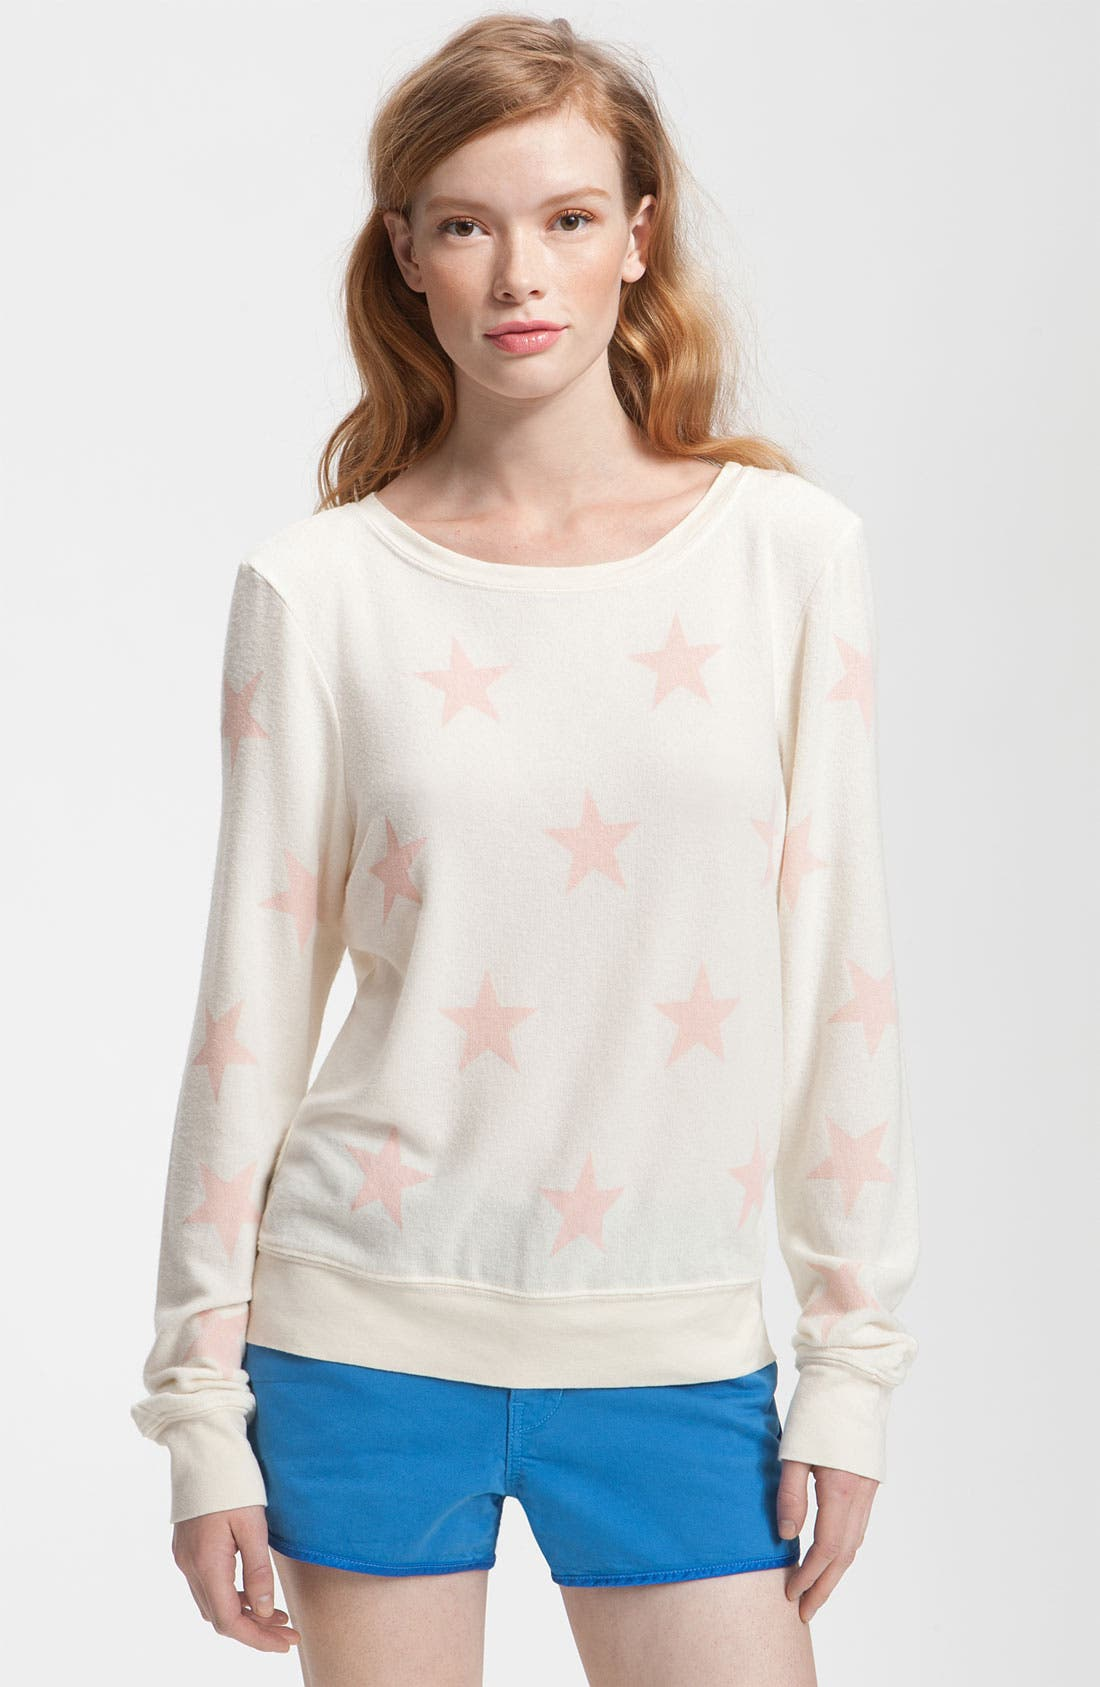 Alternate Image 1 Selected - Wildfox 'Seeing Stars' Print Sweatshirt